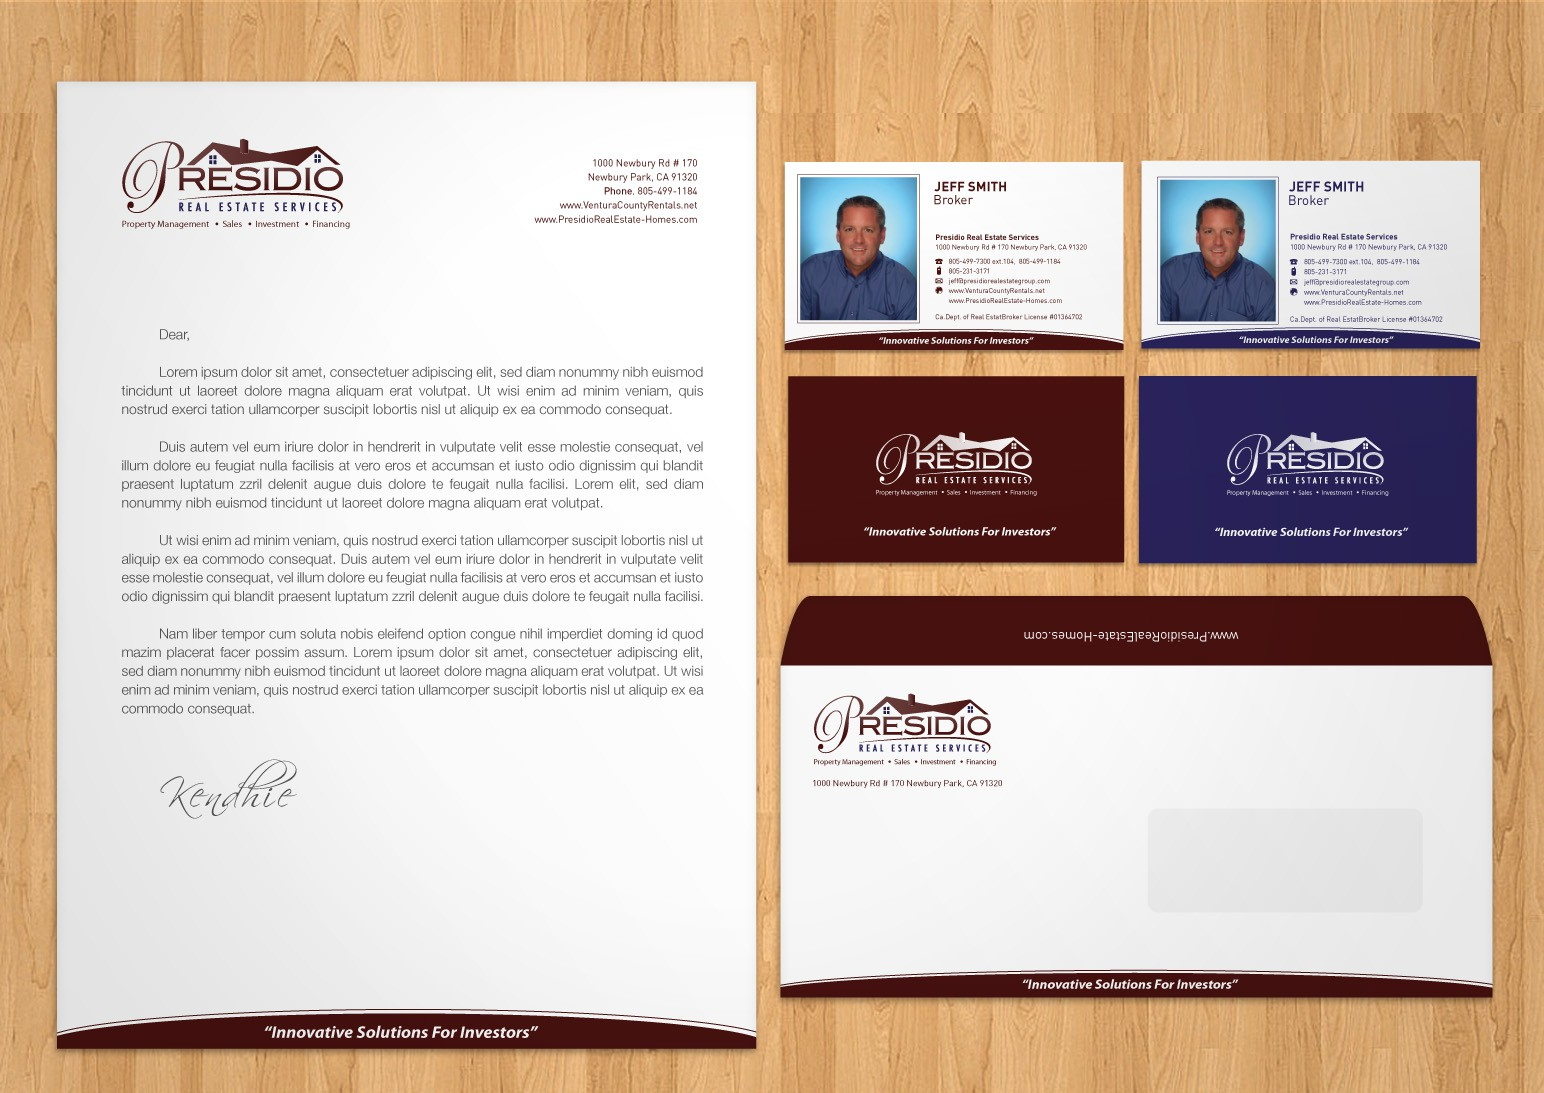 Create the next stationery for Presidio Real Estate Services